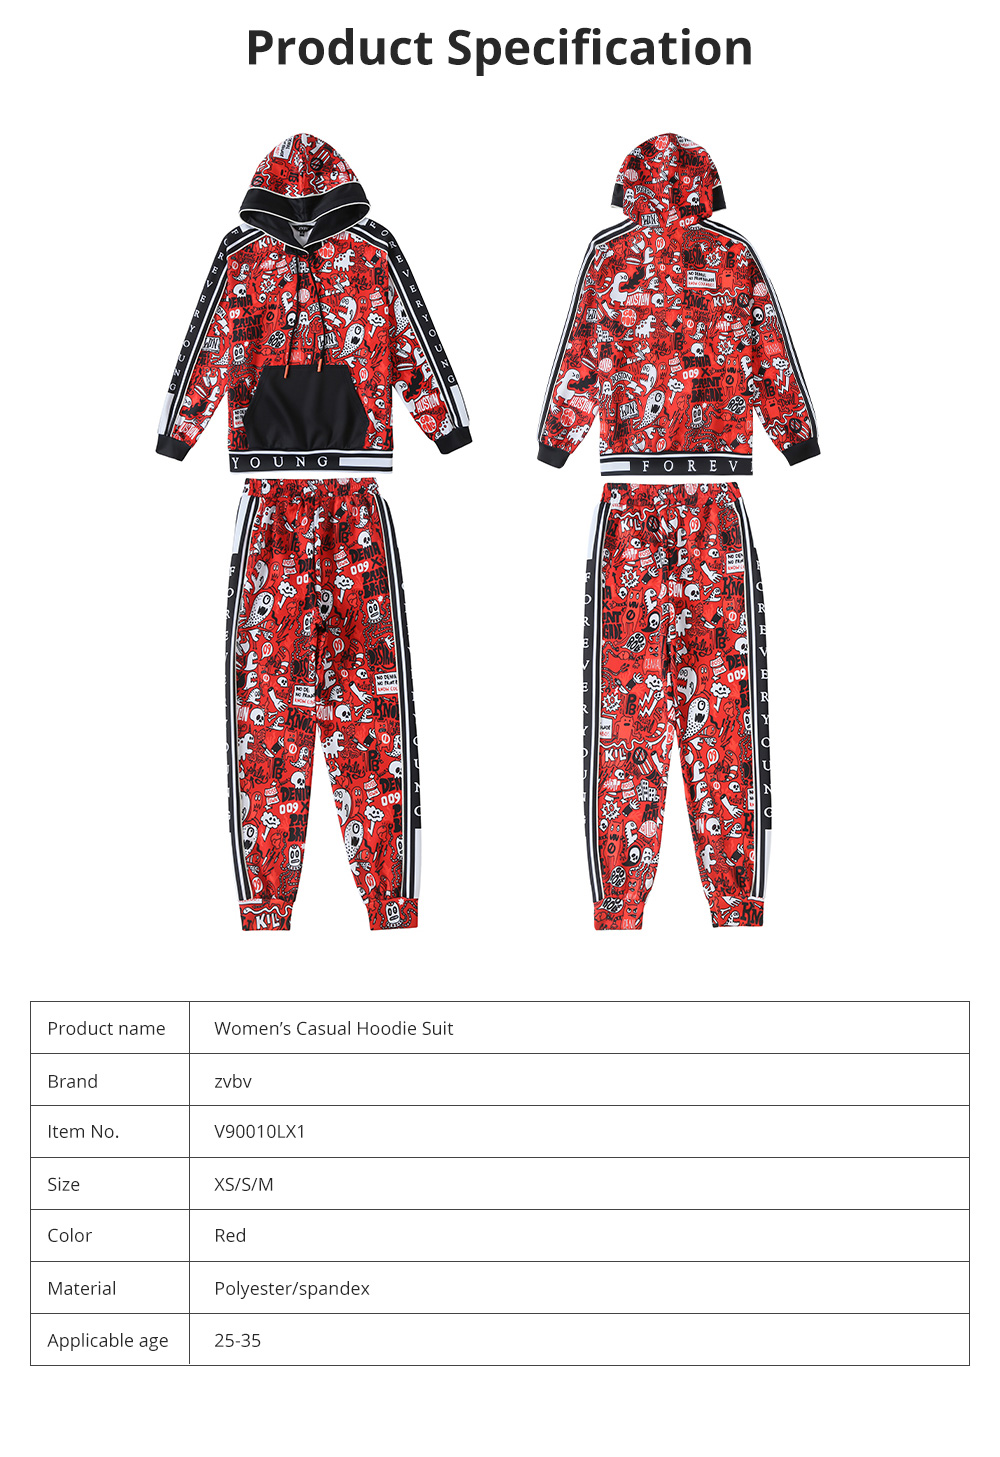 Women's Tracksuit with Vibrant Color 2 Piece Sets Casual Hoodie Suit with Close-Up Sleeve and Leg Openings 7